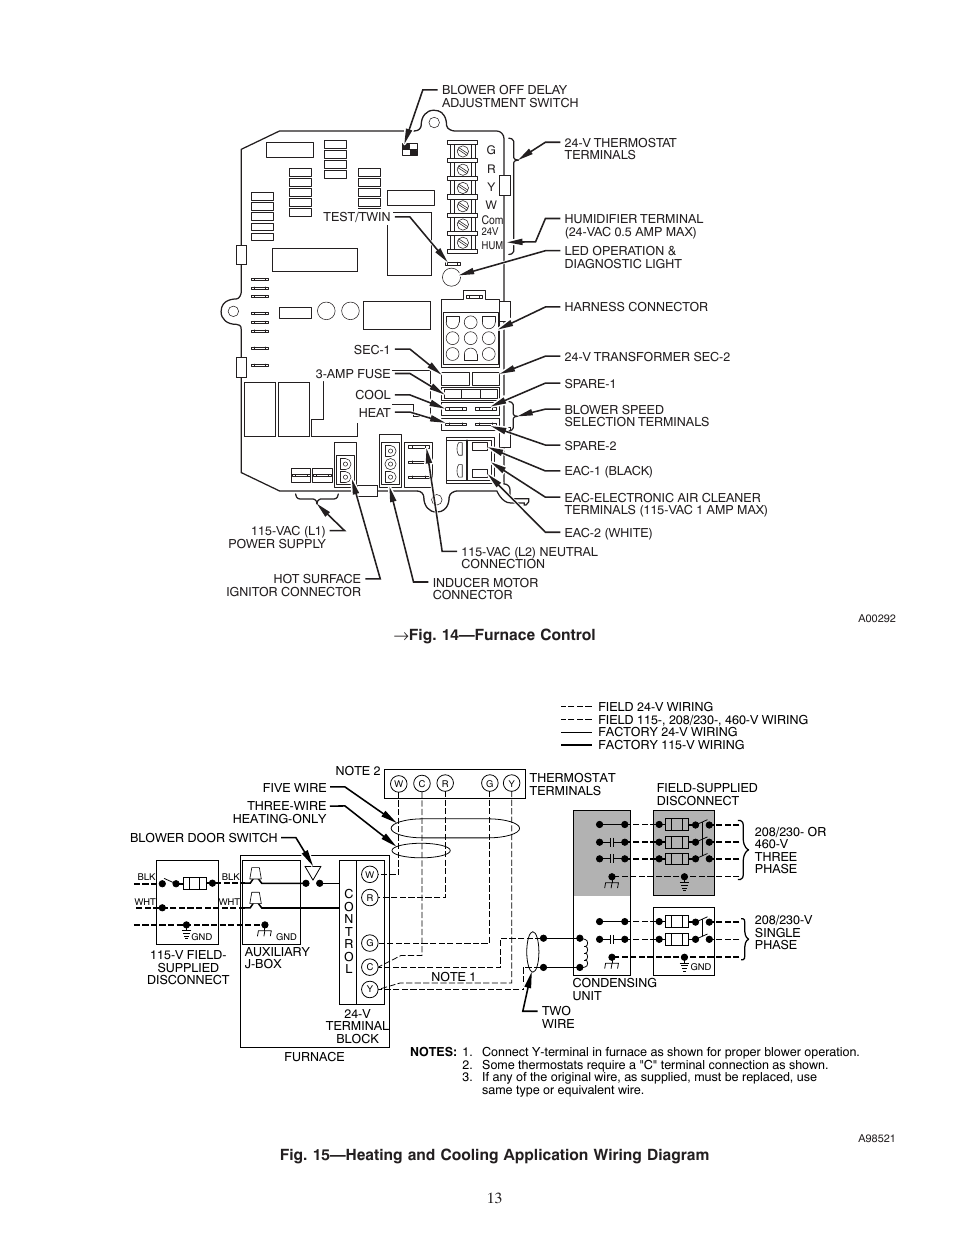 carrier weathermaker 8000 58zav page13 fig 14 furnace control carrier weathermaker 8000 58zav user carrier weathermaker 8000 wiring diagram at bayanpartner.co